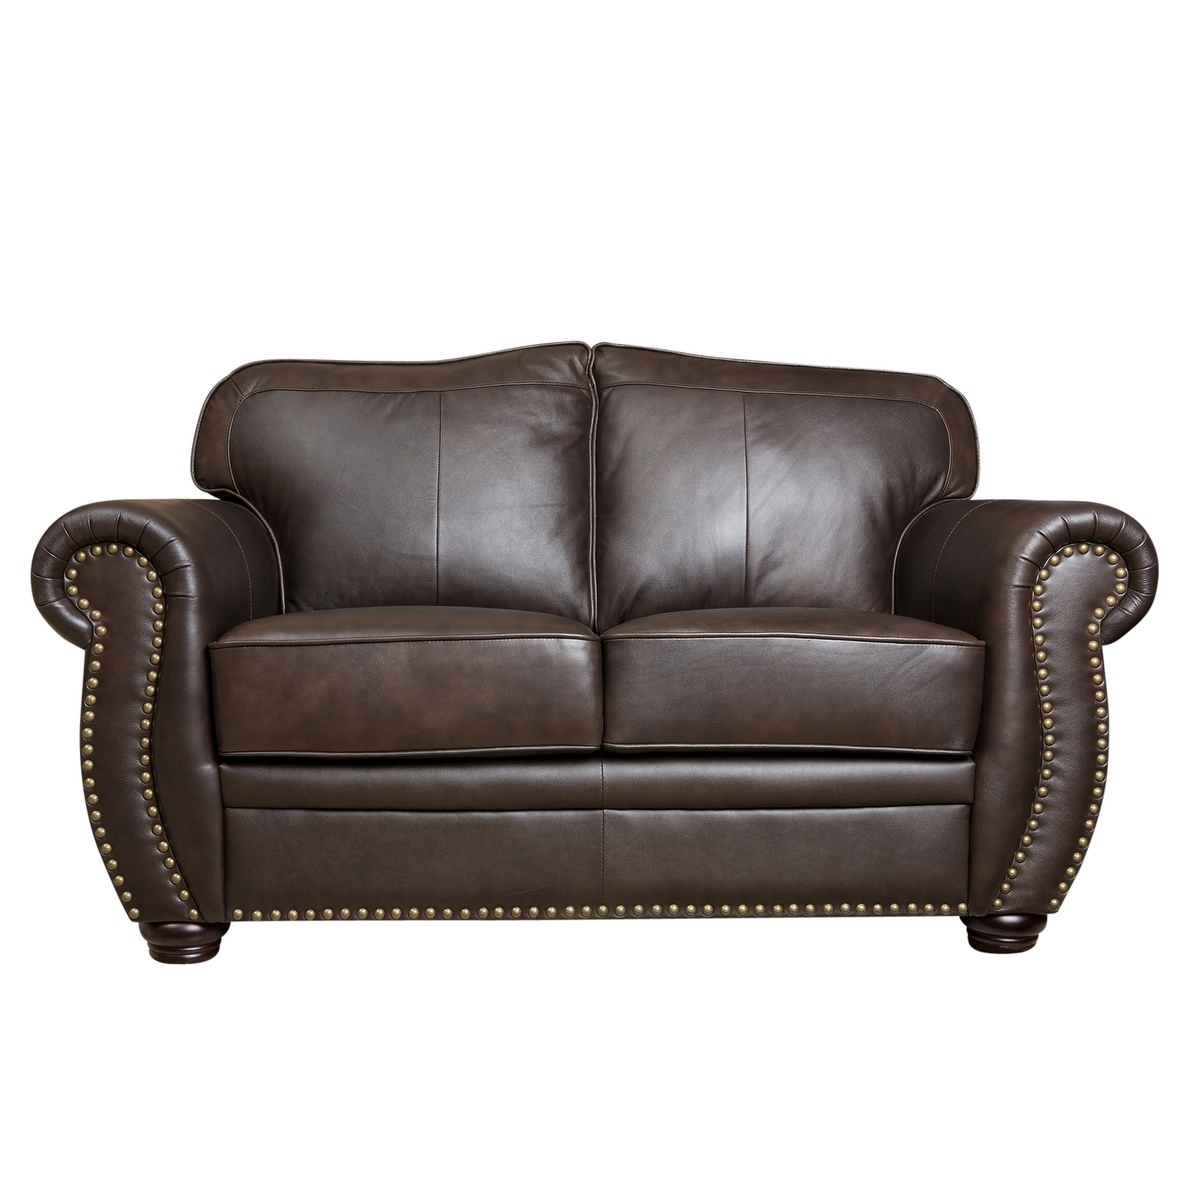 loveseat contemporary leather products scandis pavel tailored bn